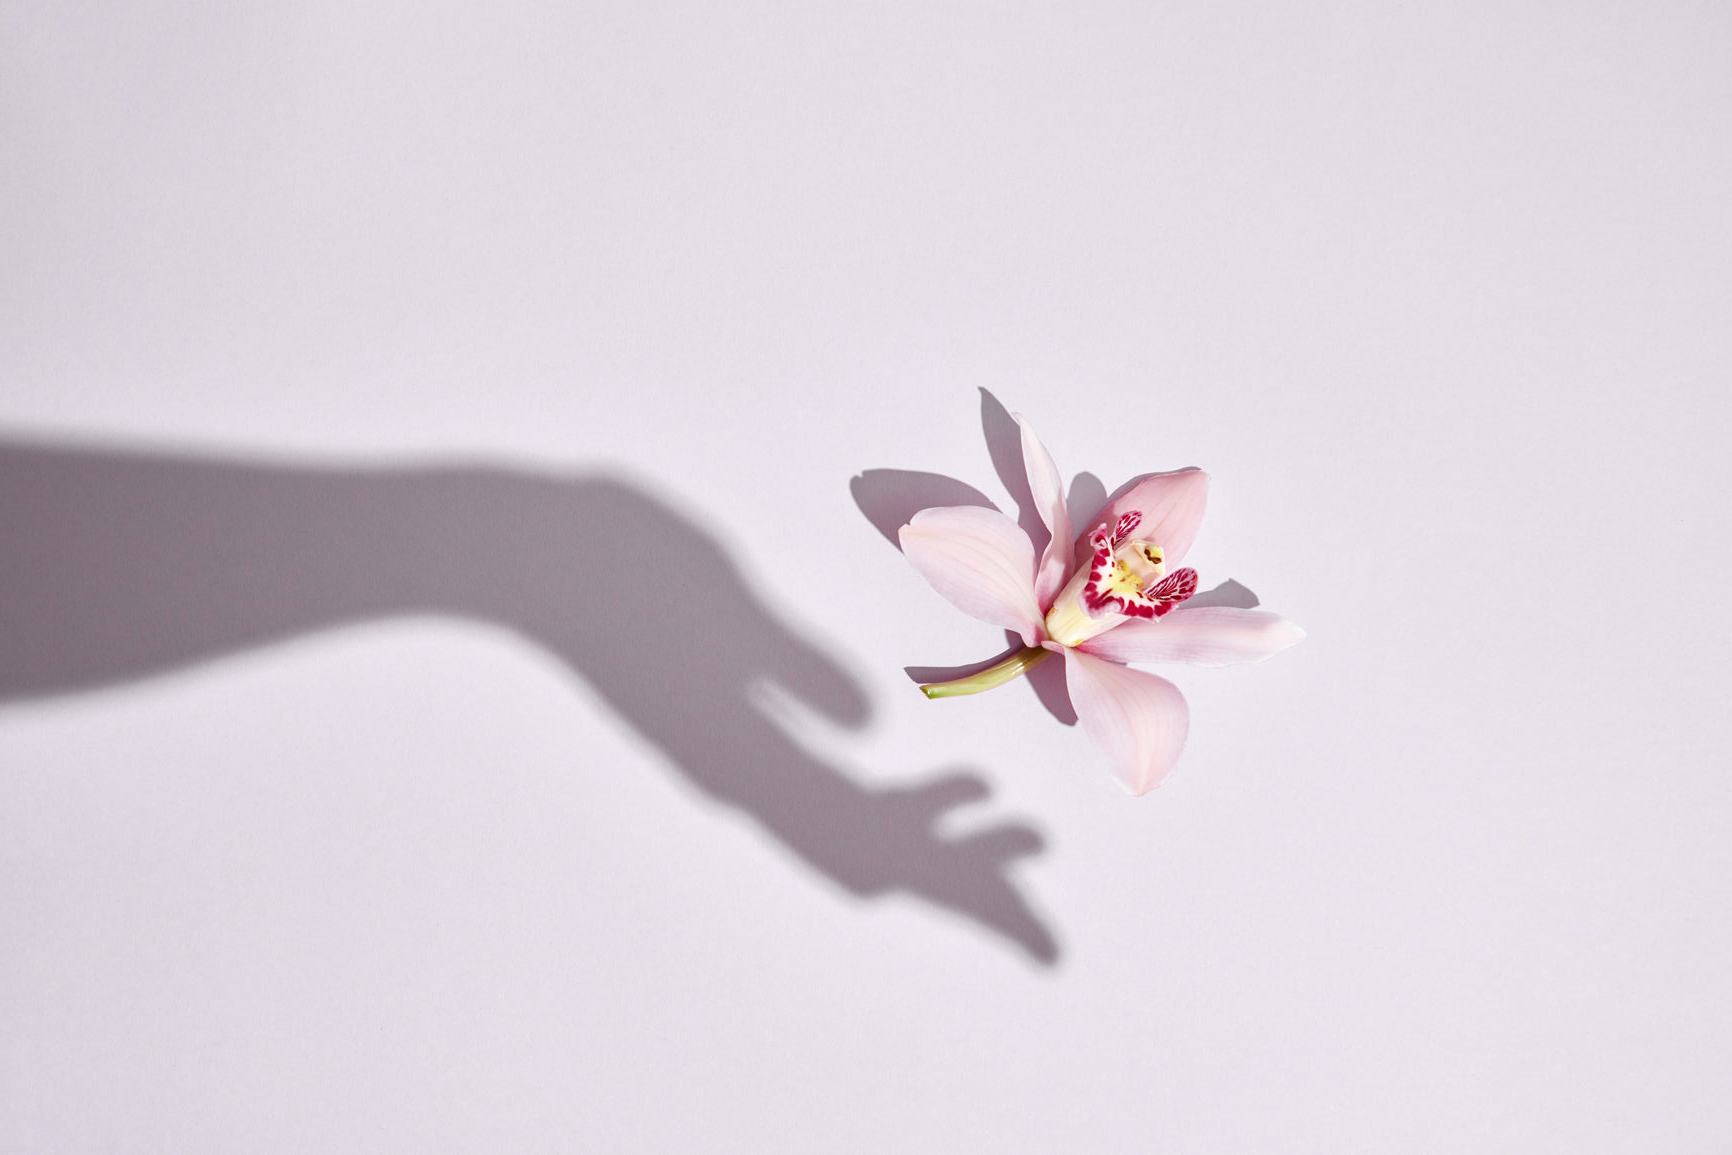 To-be-magnetic-prosperity-spring-flower-equinox-full-moon